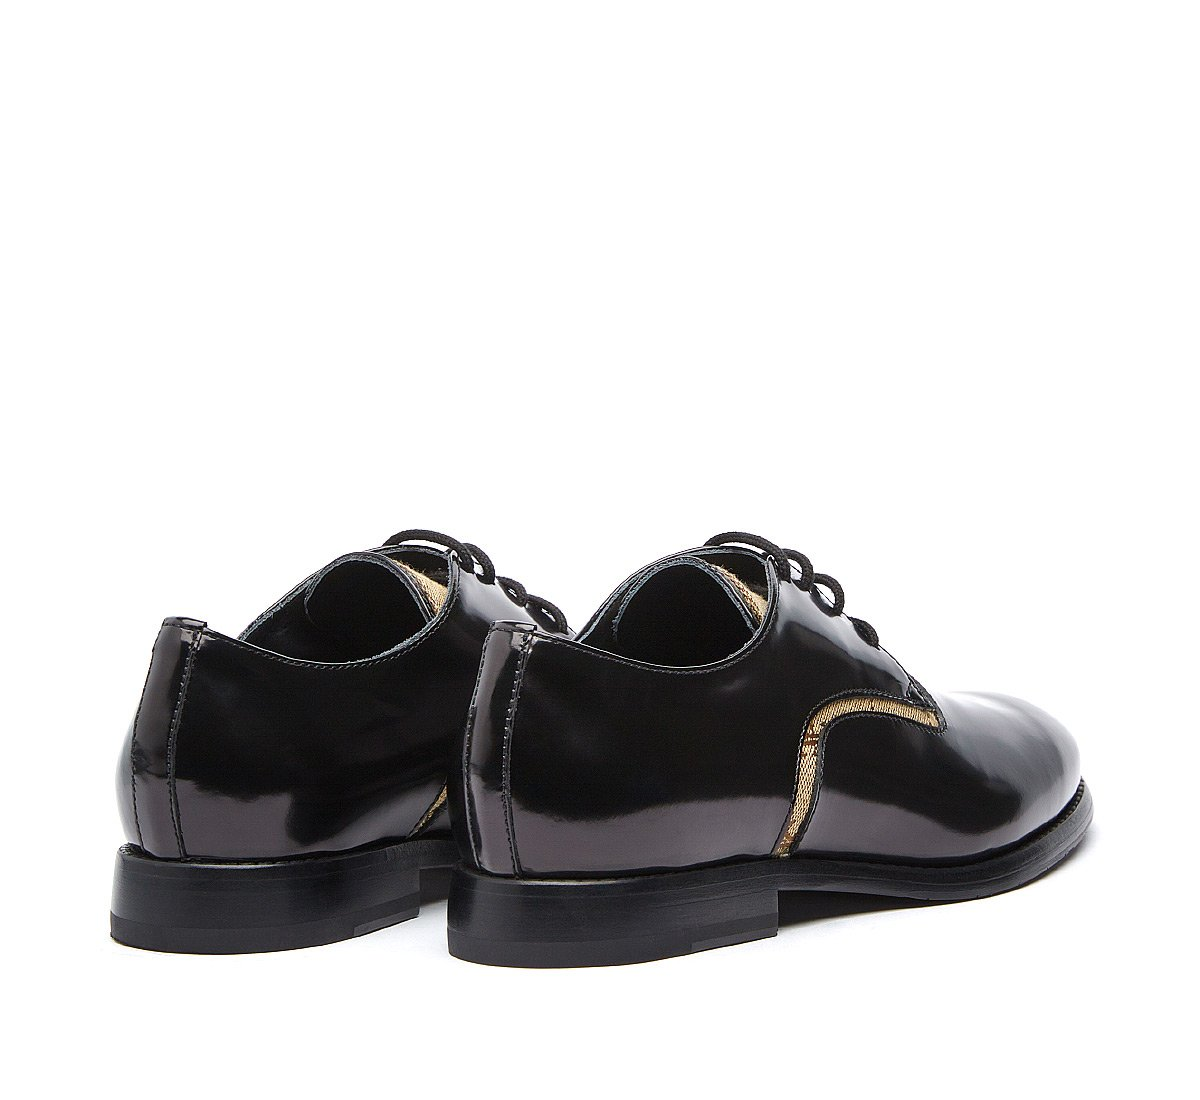 Four-hole lace-ups in calf leather